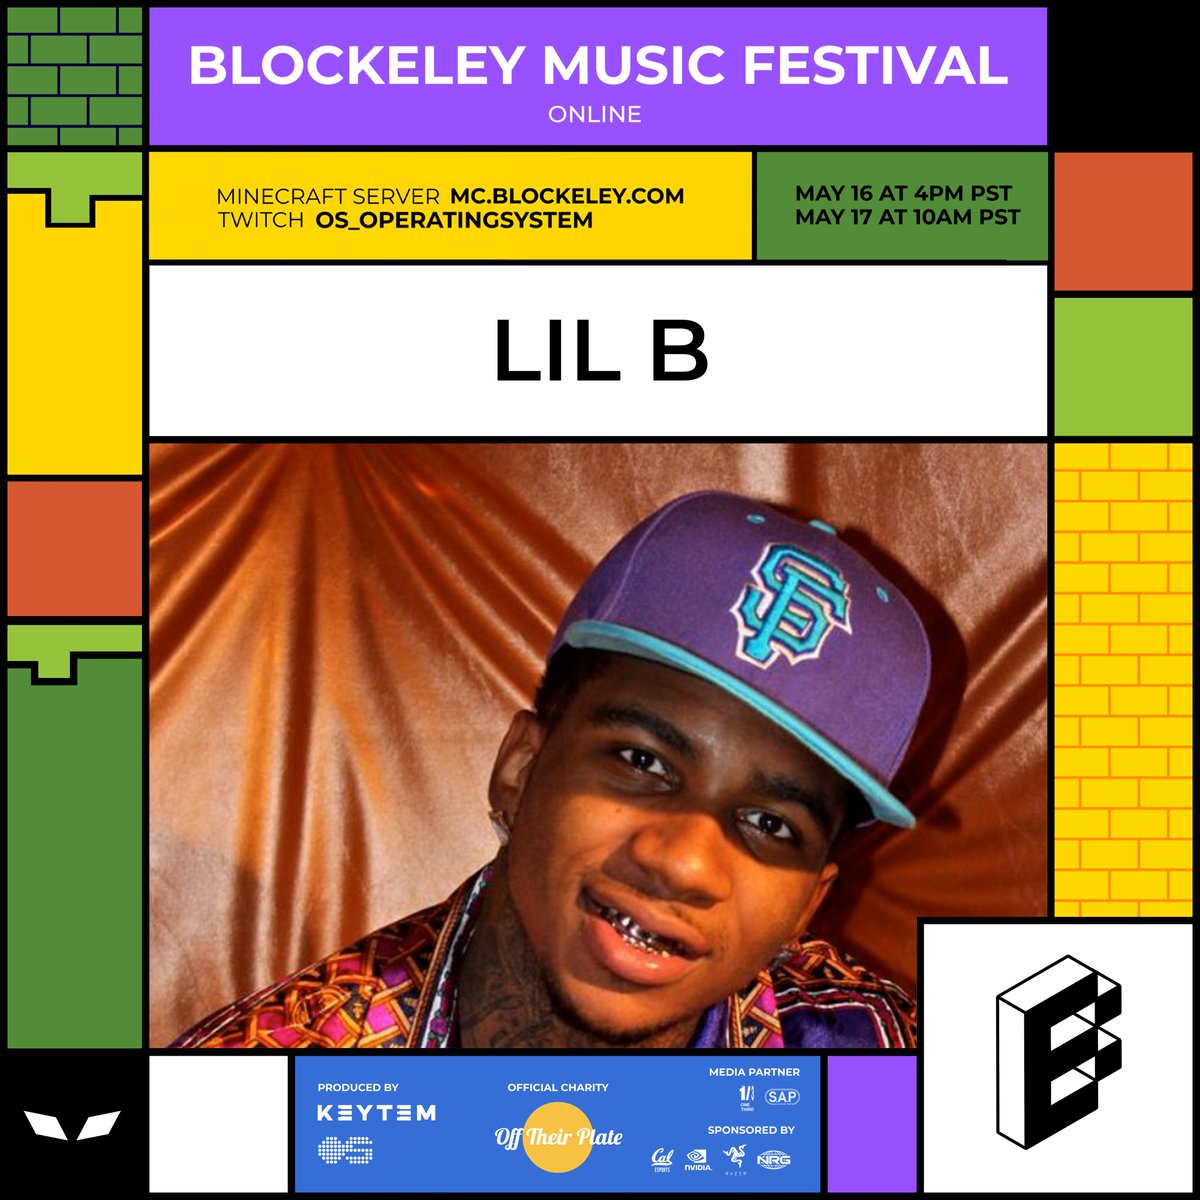 THE ONE AND ONLY LIL B THE BASED GOD @LILBTHEBASEDGOD IS PLAYING AT BLOCKELEY MUSIC FESTIVAL AT 11:10 PM PST! MINECRAFT IP: MC.BLOCKELEY.COM LIVESTREAM: twitch.tv/os_operatingsy…